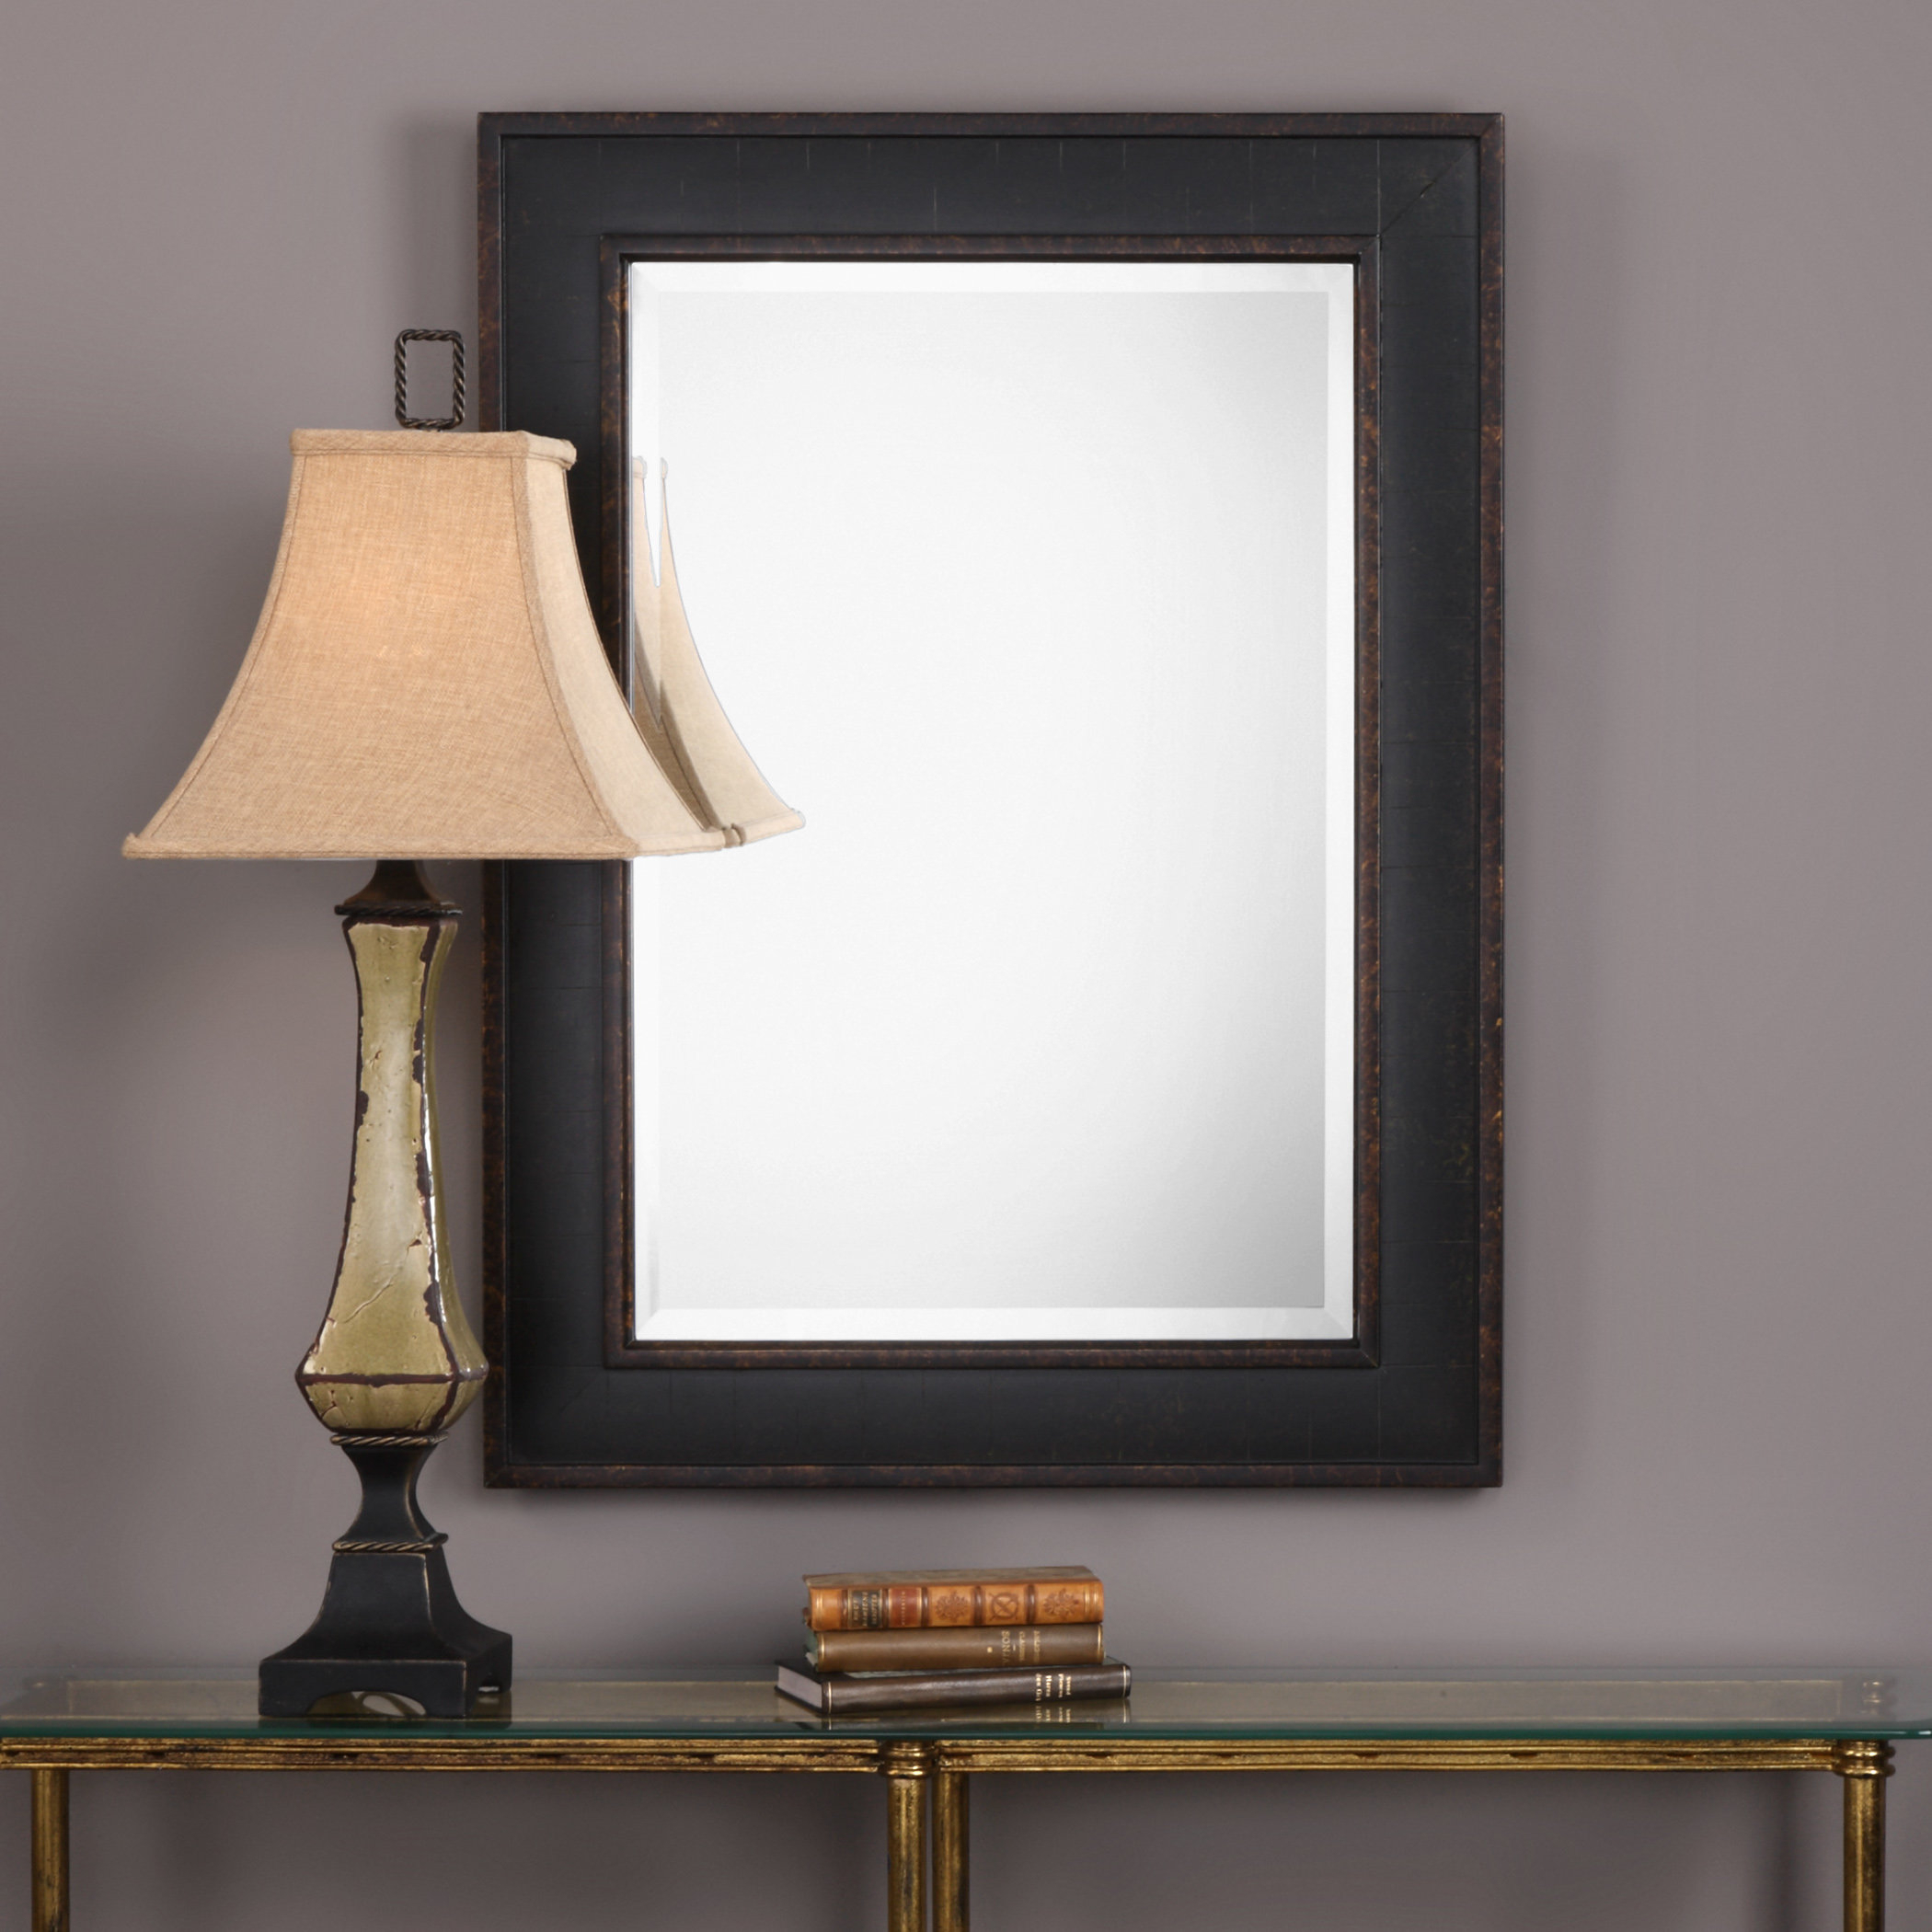 Modern & Contemporary Beveled Accent Mirror Regarding Modern & Contemporary Beveled Overmantel Mirrors (View 3 of 20)